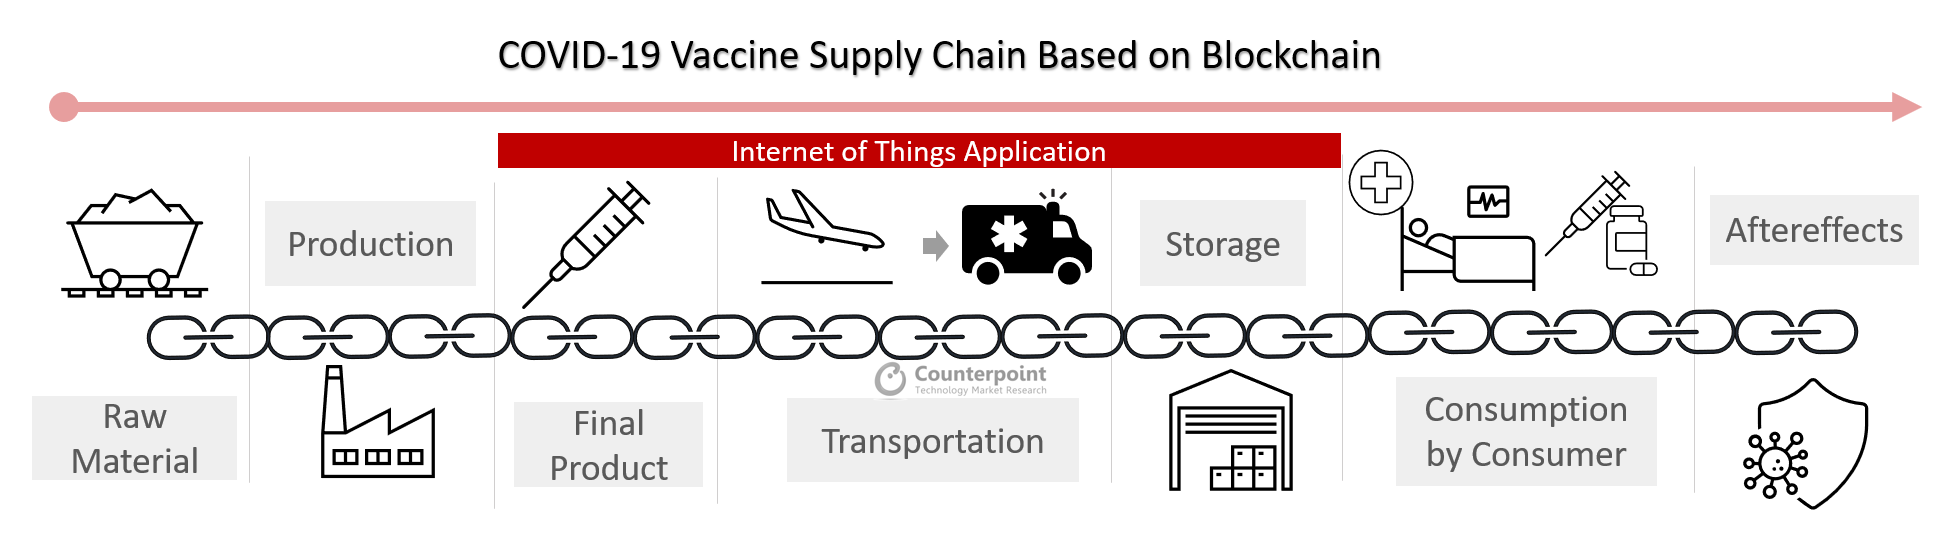 Counterpoint_ COVID 19 Vaccine Supply Chain Based on Blockchain